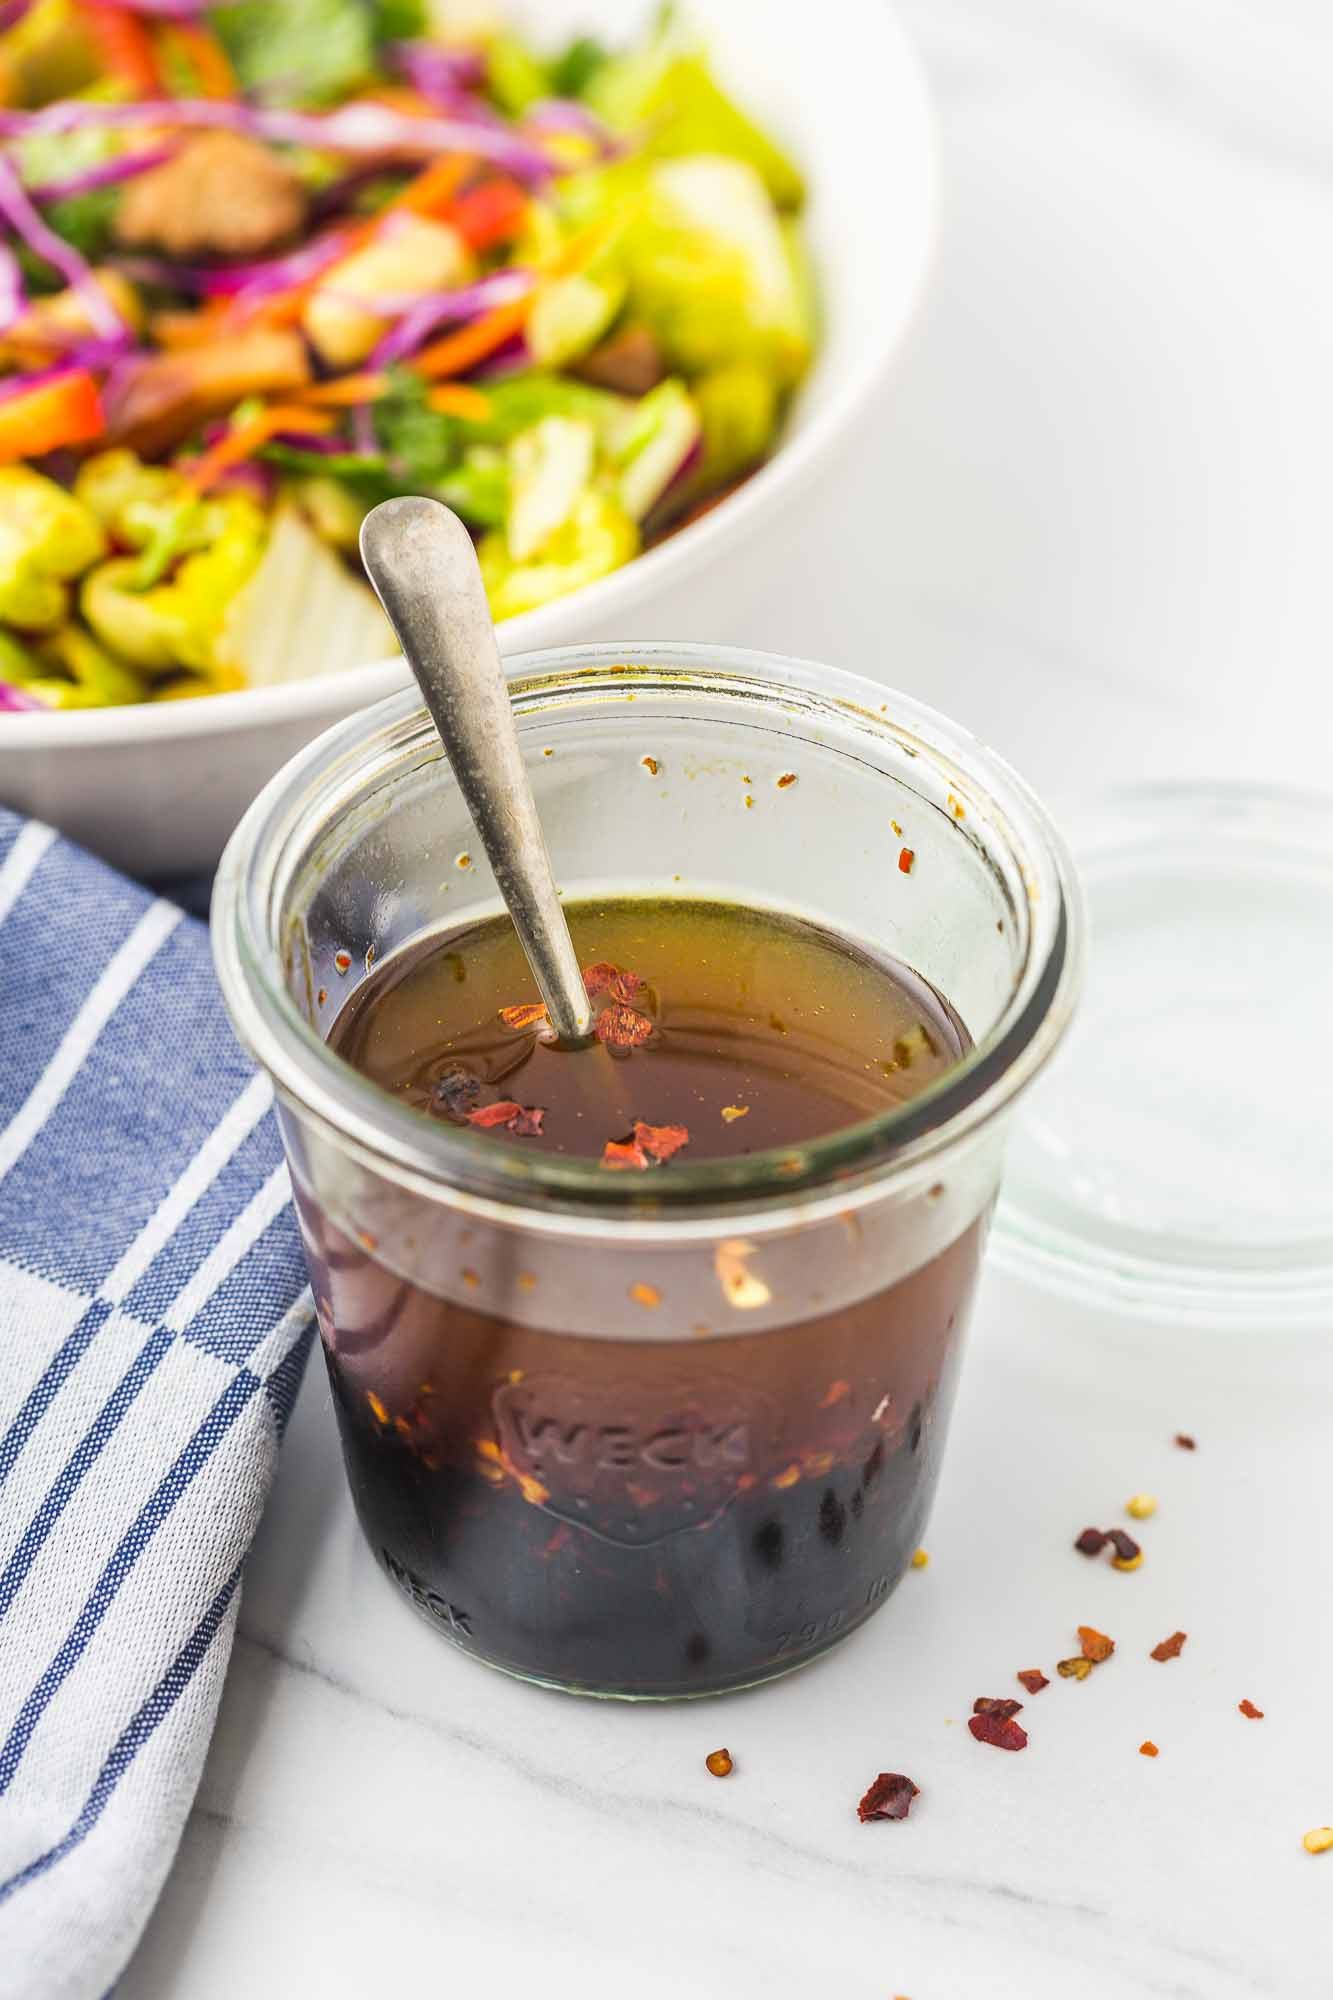 Soy based dressing in a weck jar with a spoon, and a salad in the background